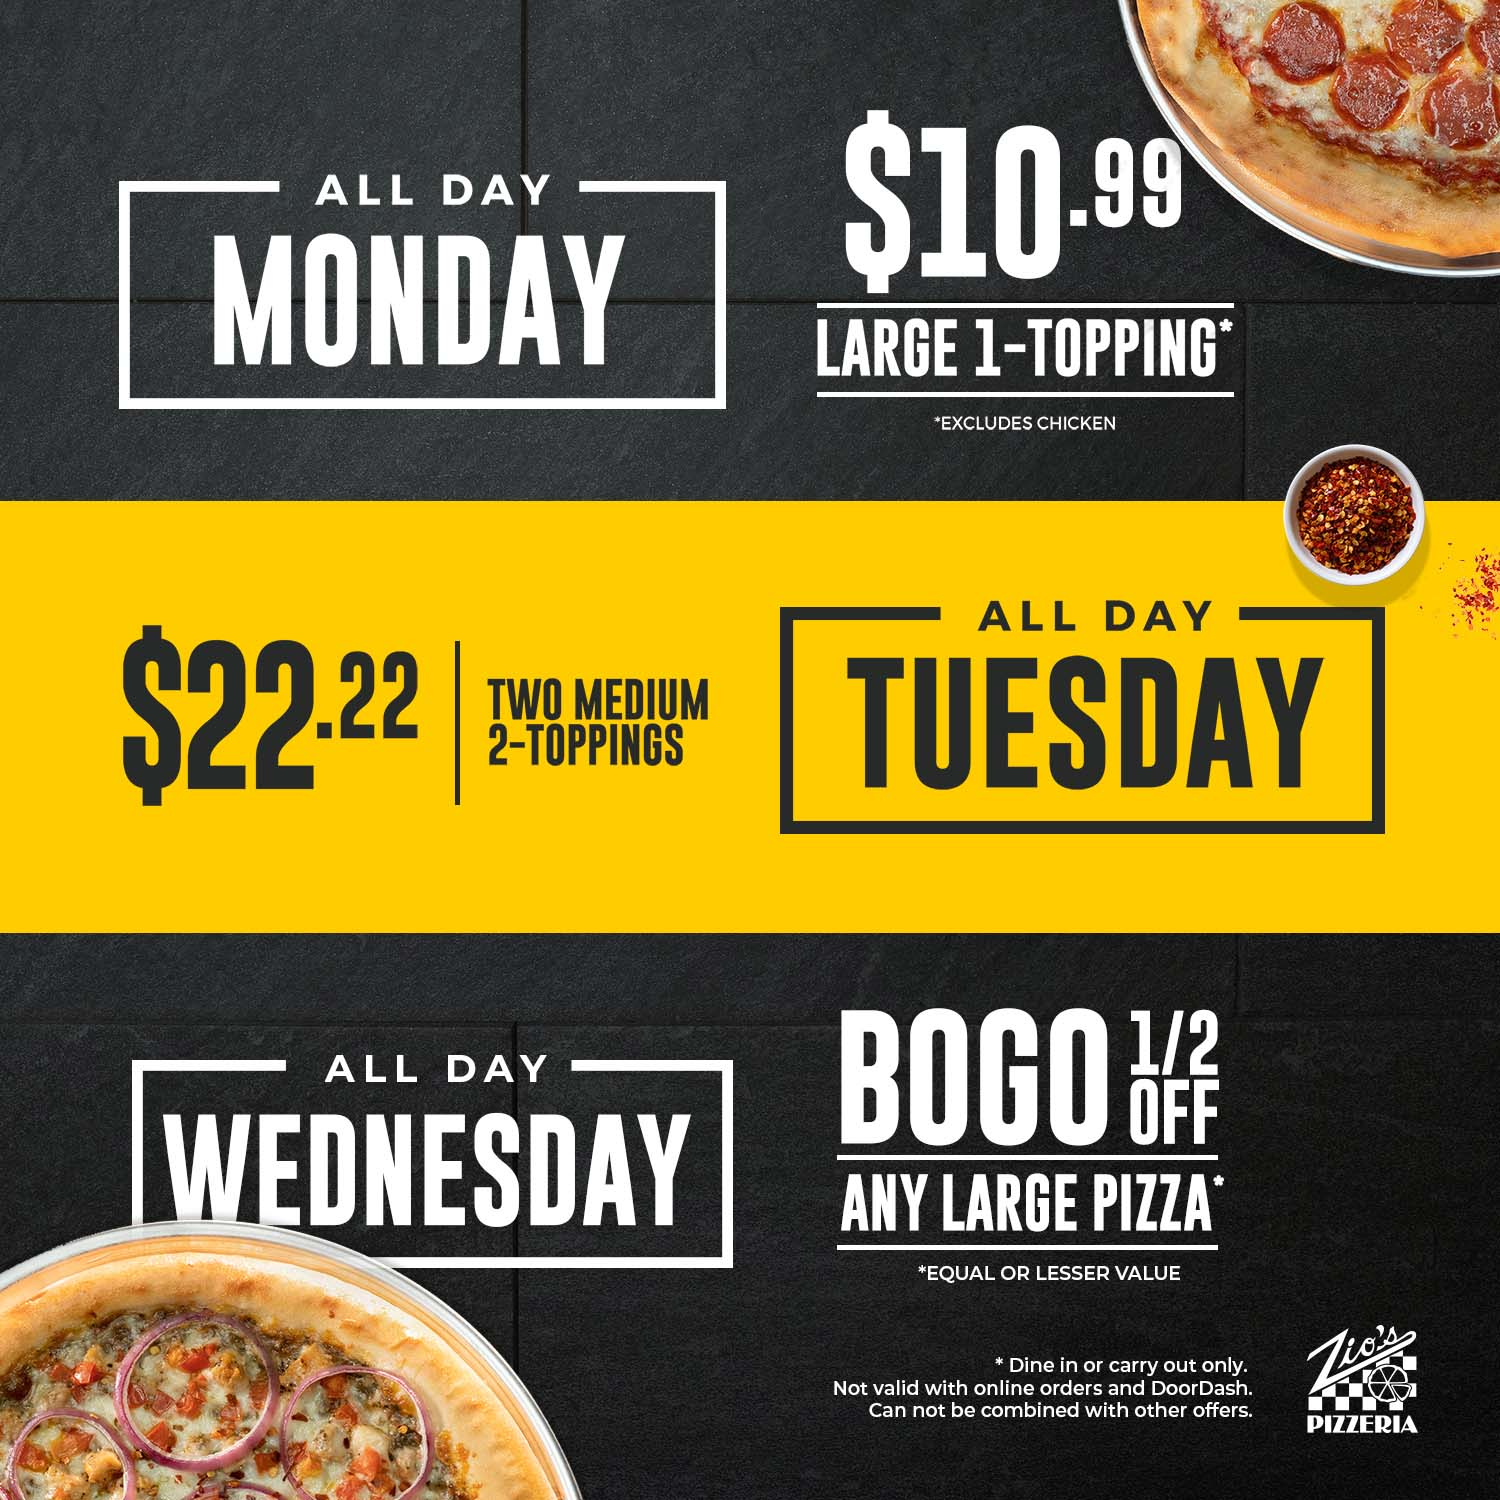 Monday, Tuesday, Wednesday Deals